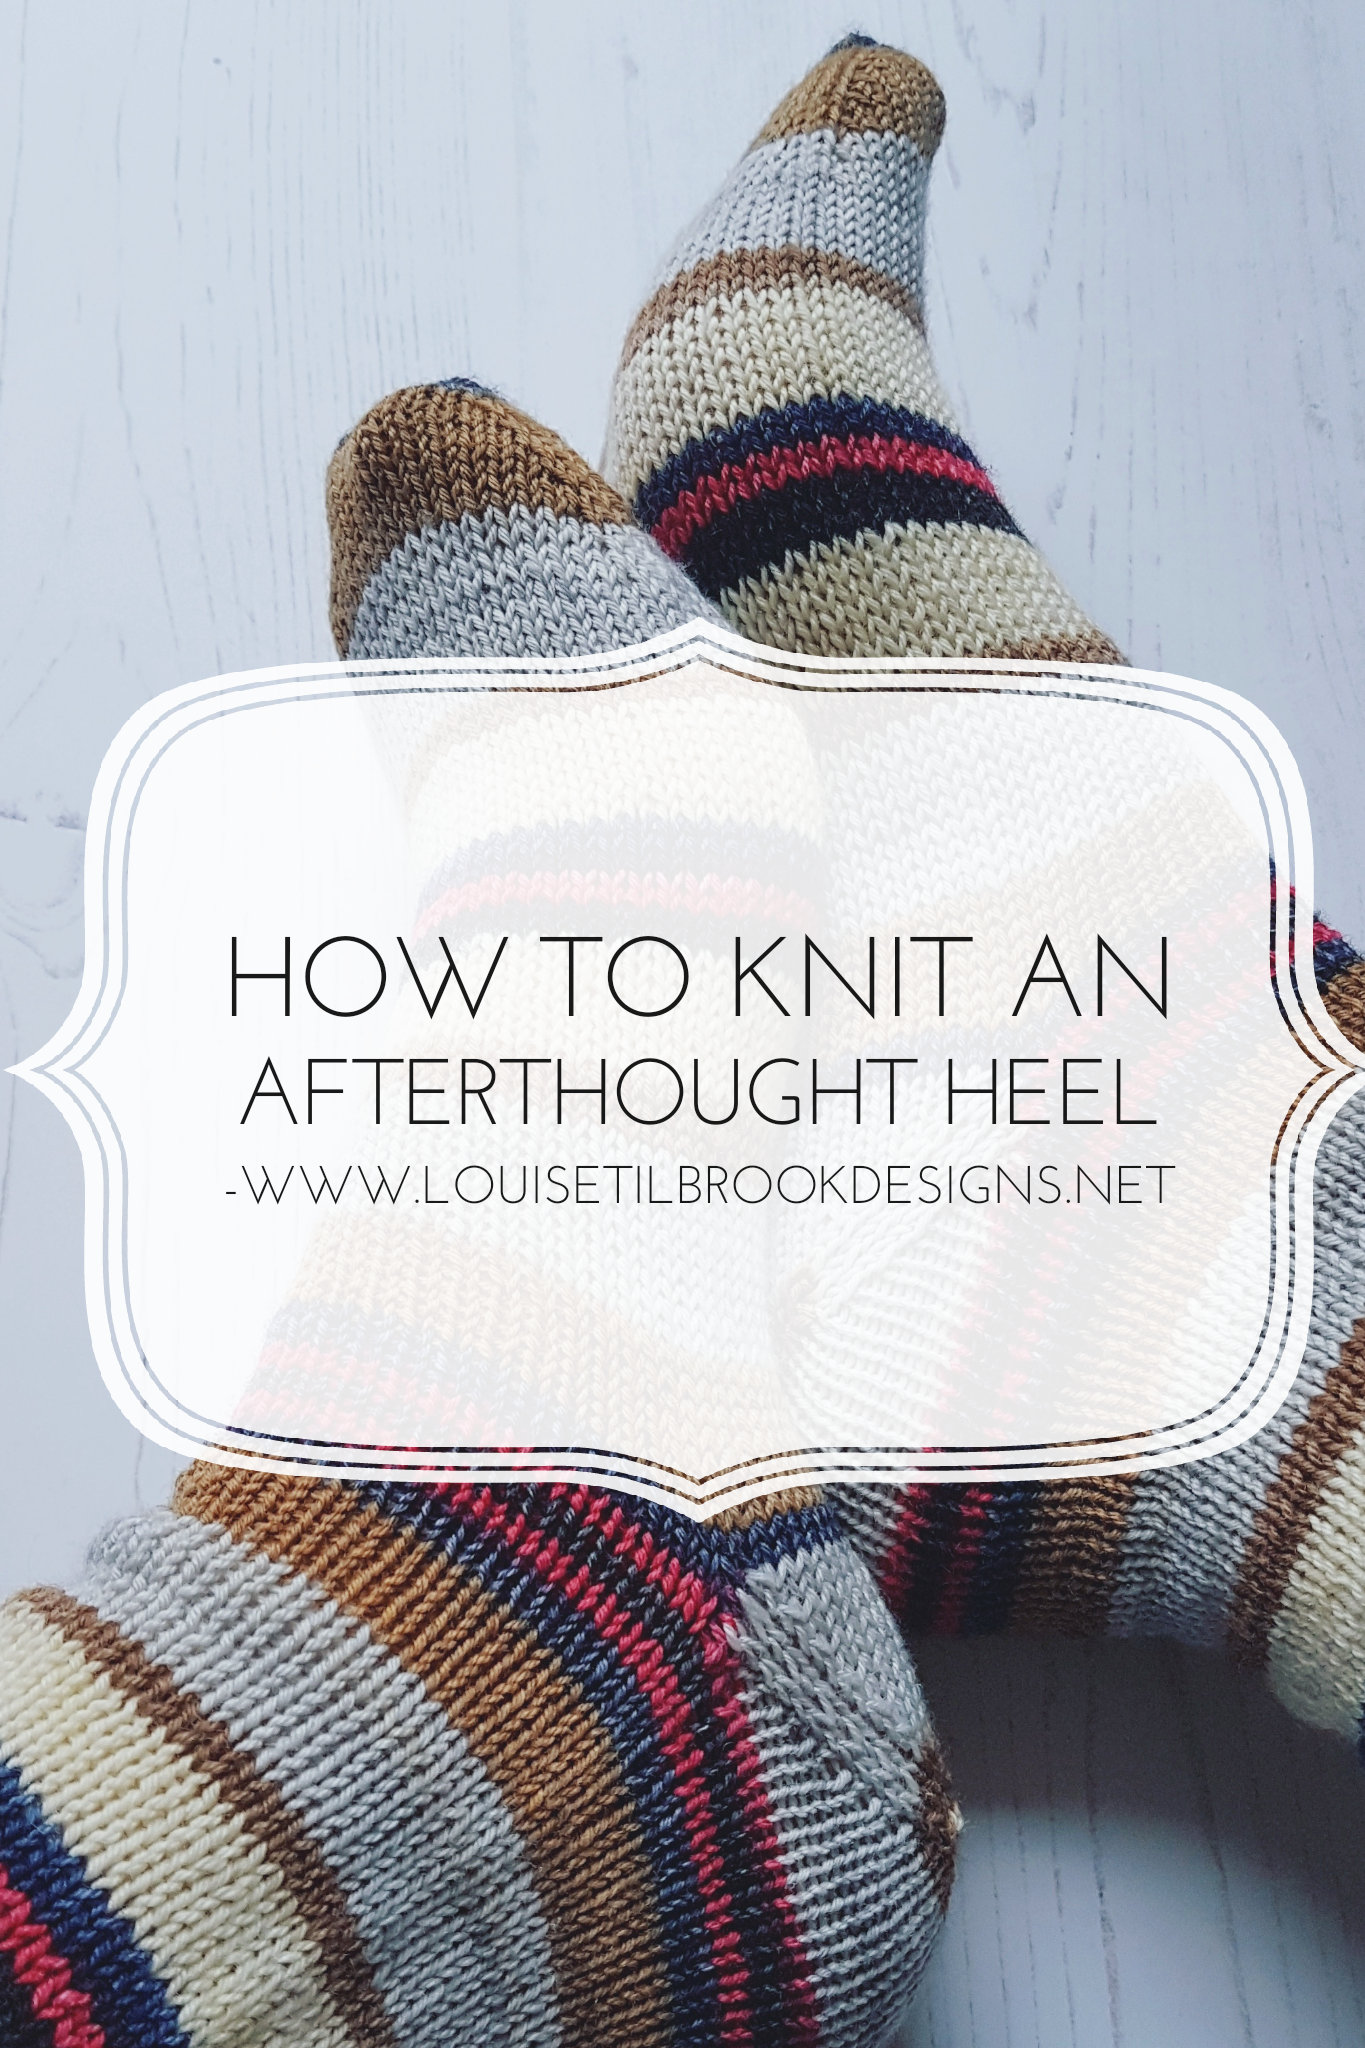 How to knit an afterthought heel.png